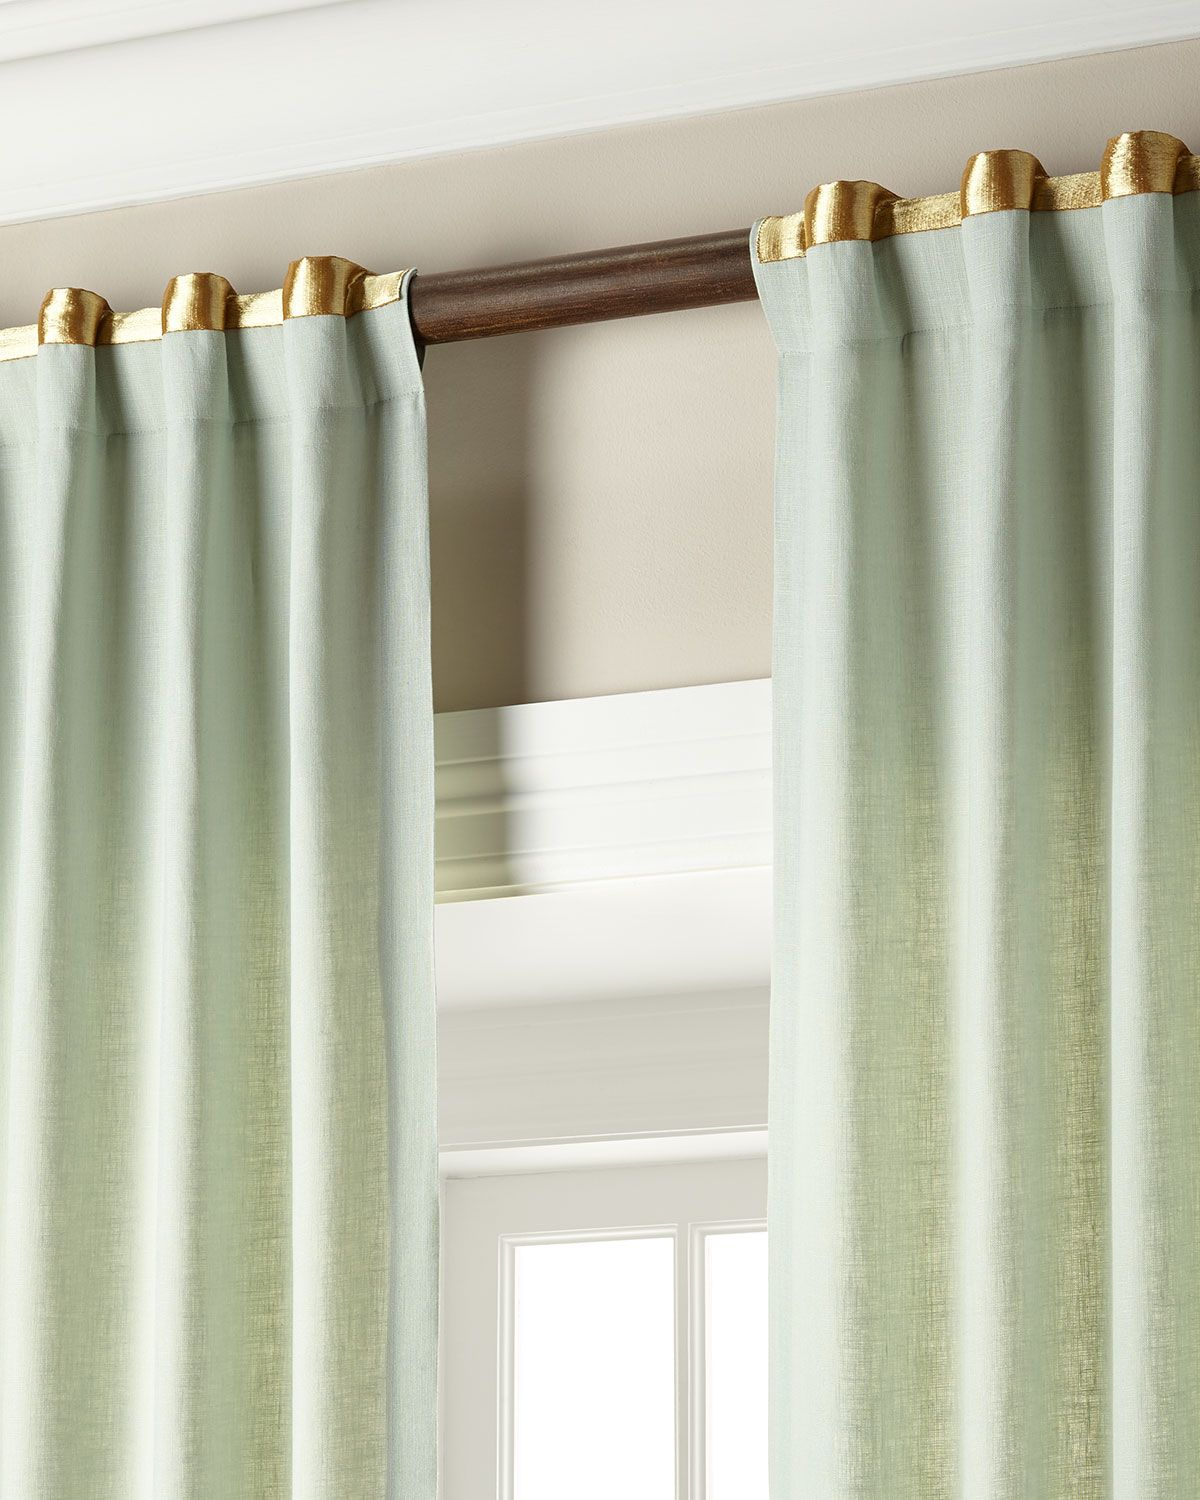 Ribbon Trim Curtains Linen Curtains With Metallic Ribbon Band Trim At Top Styled With